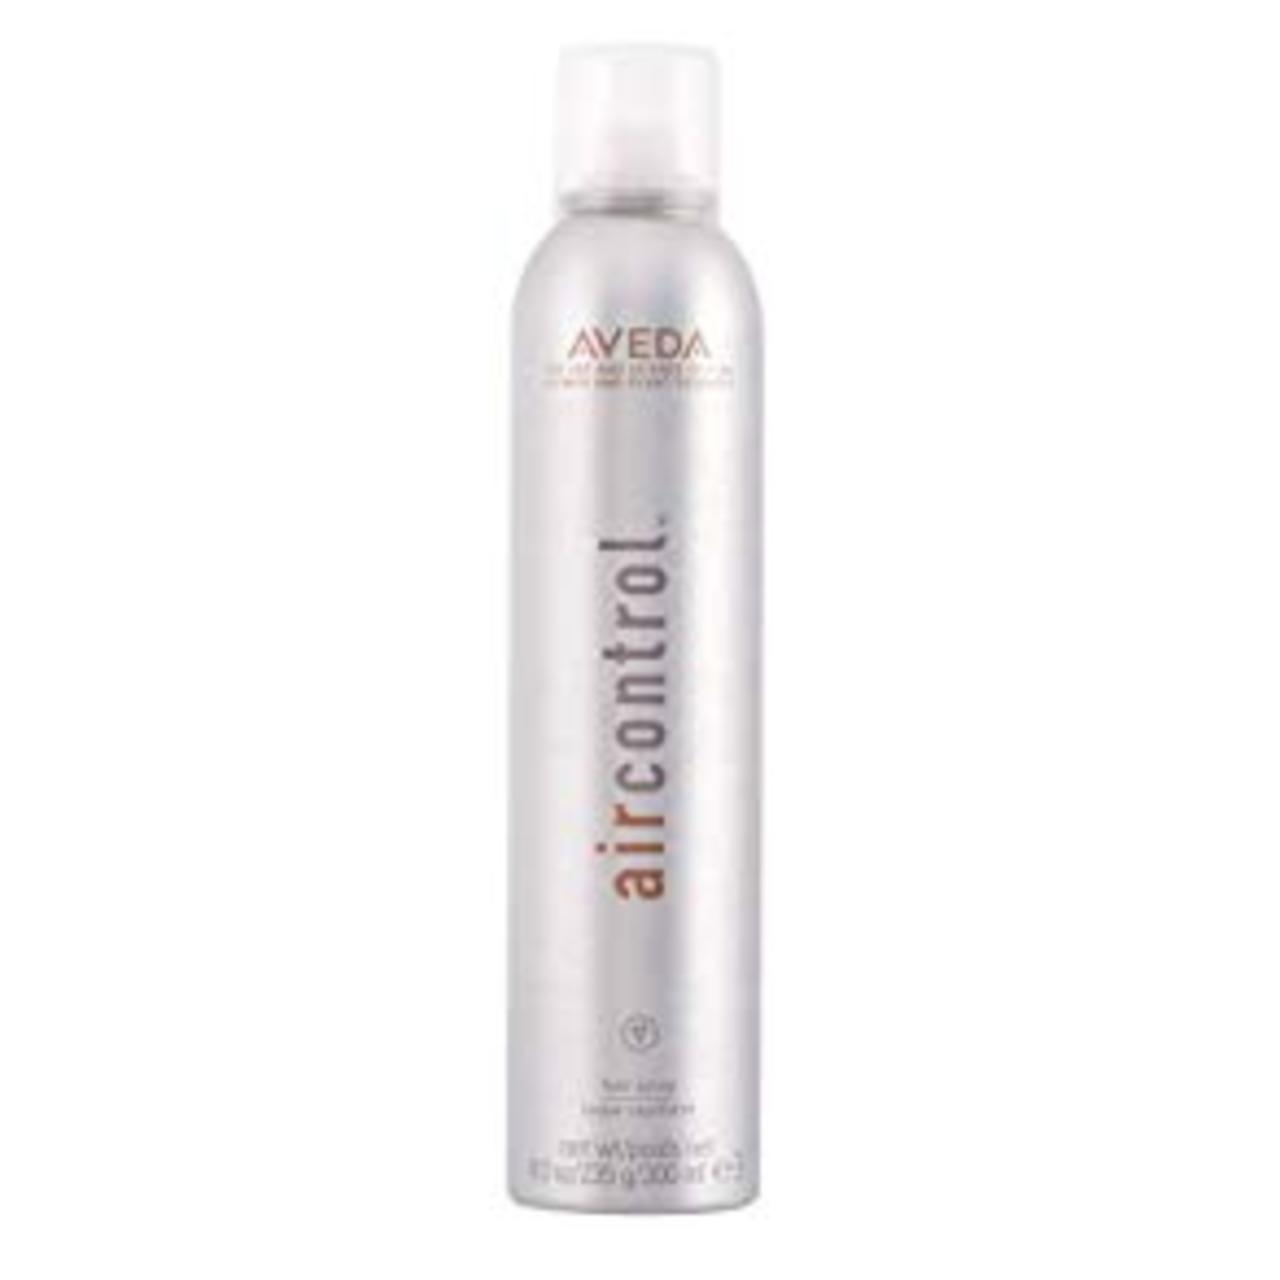 Aveda Air Control Flexable Hair Spray, 4.875 kr.